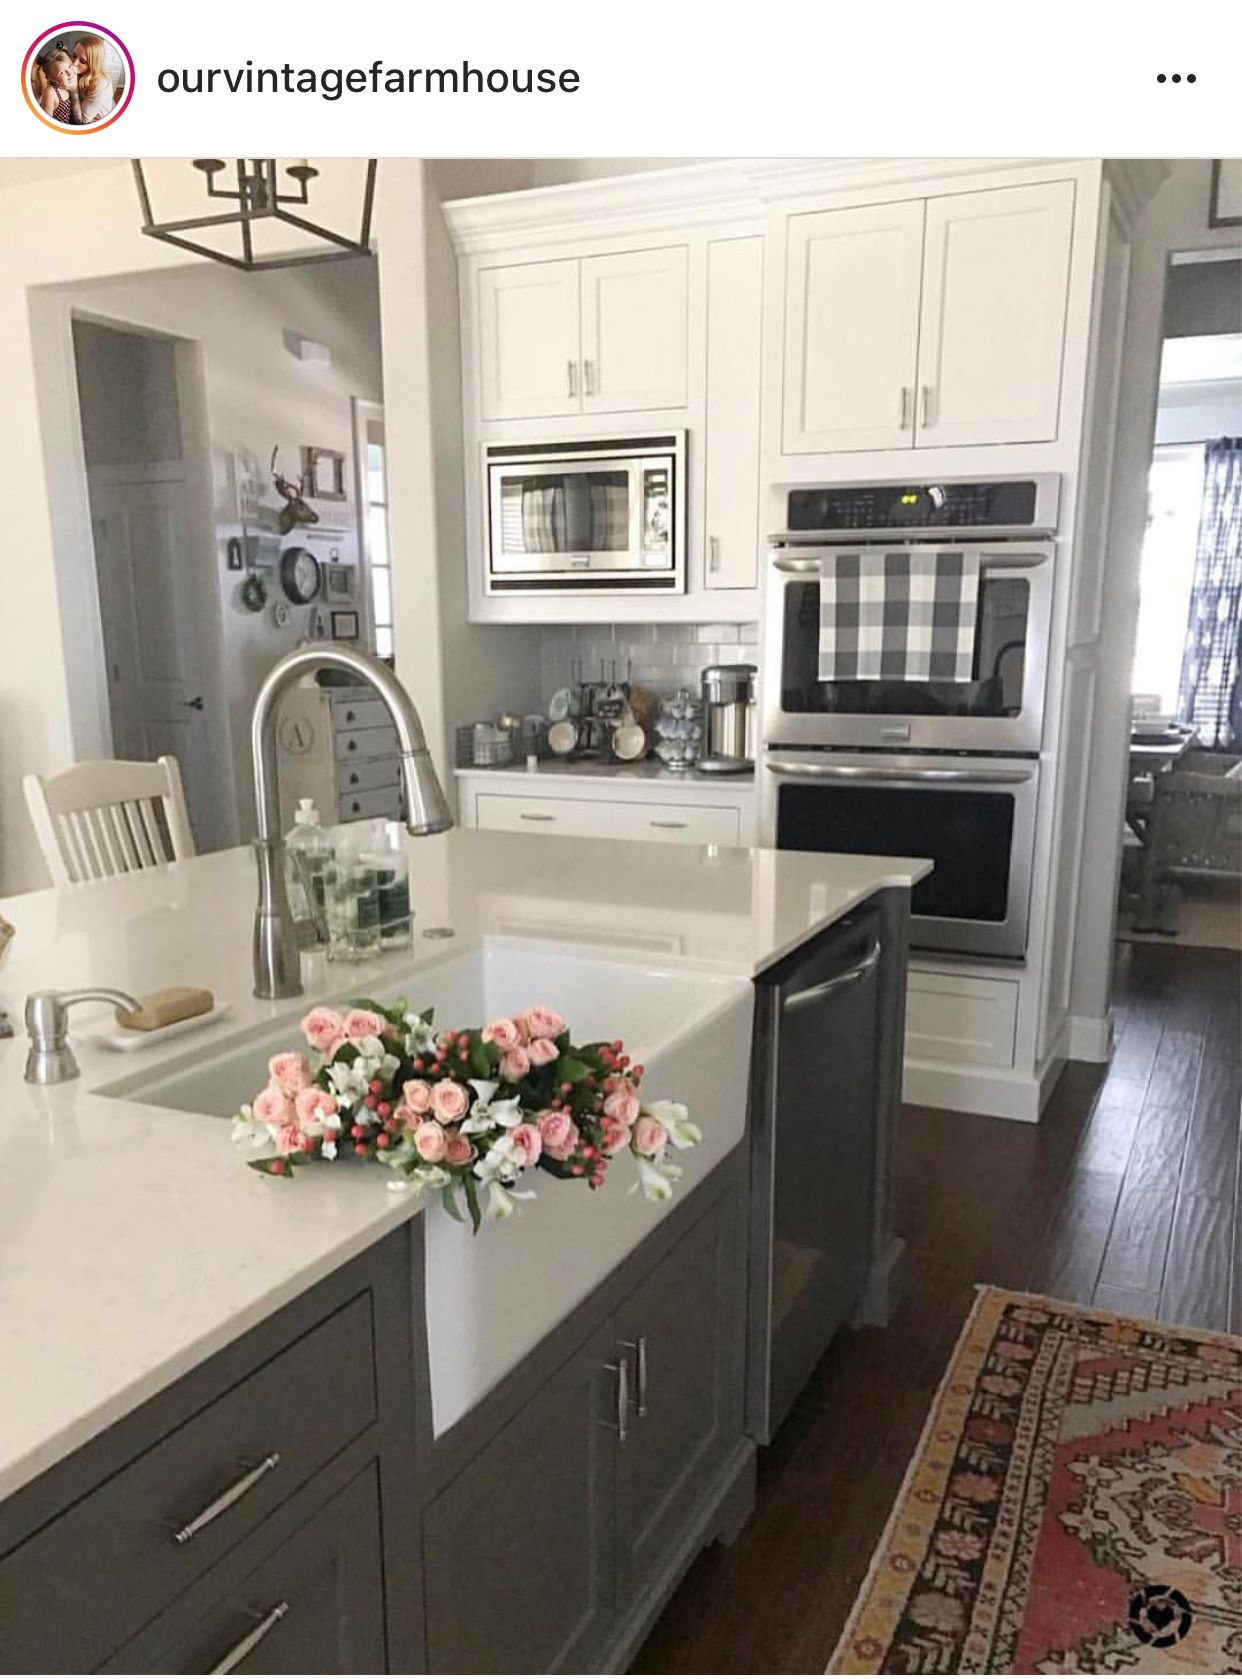 sink kitchen cabinets sm appliances pin by karla aliff on idea farmhouse traditional antique white welcome this photo gallery has pictures of kitchens featuring cream or in